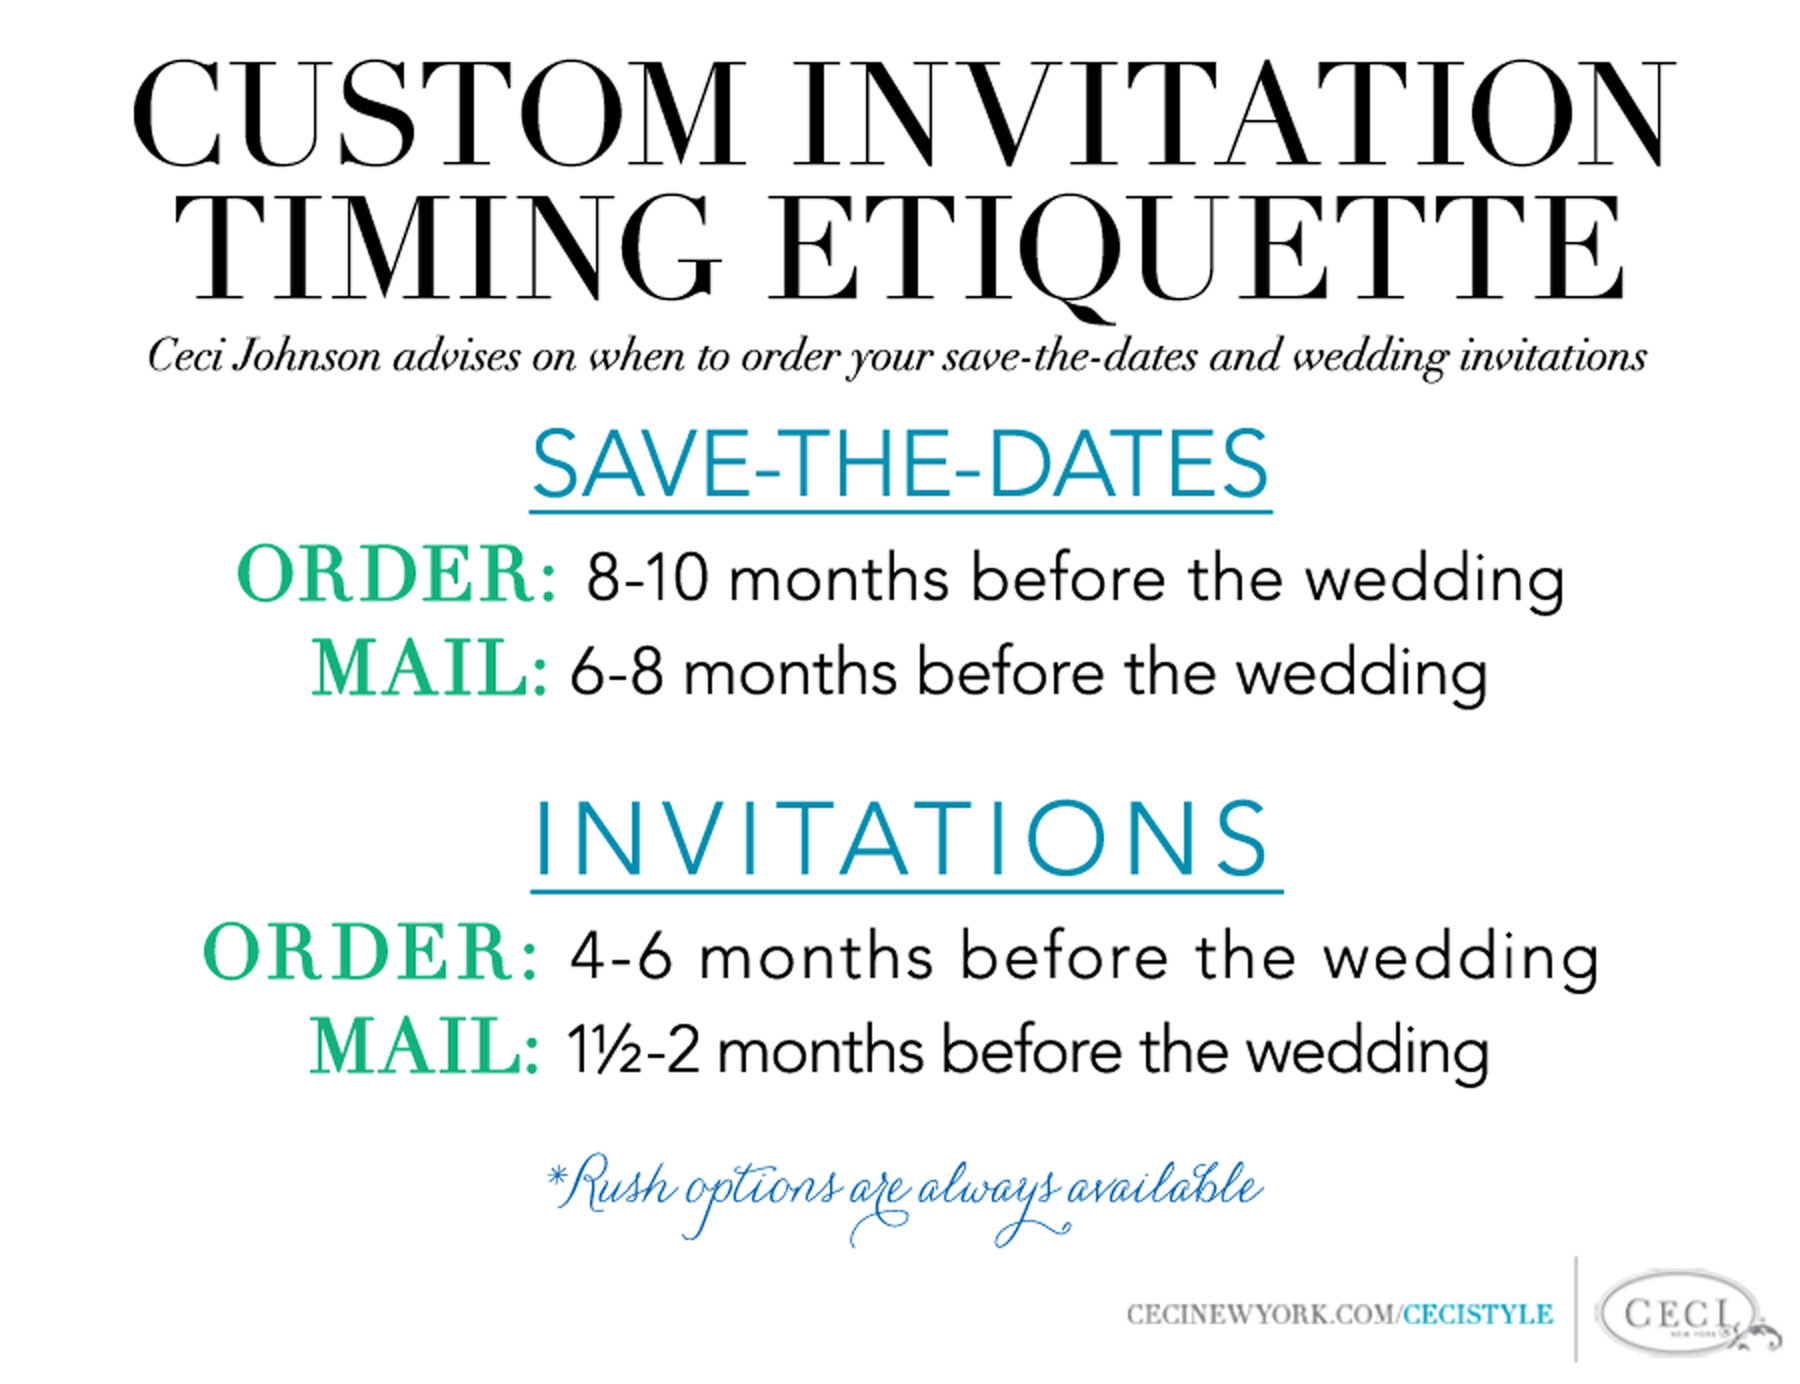 v214 cecistyle ceci new york With wedding invitations timing etiquette